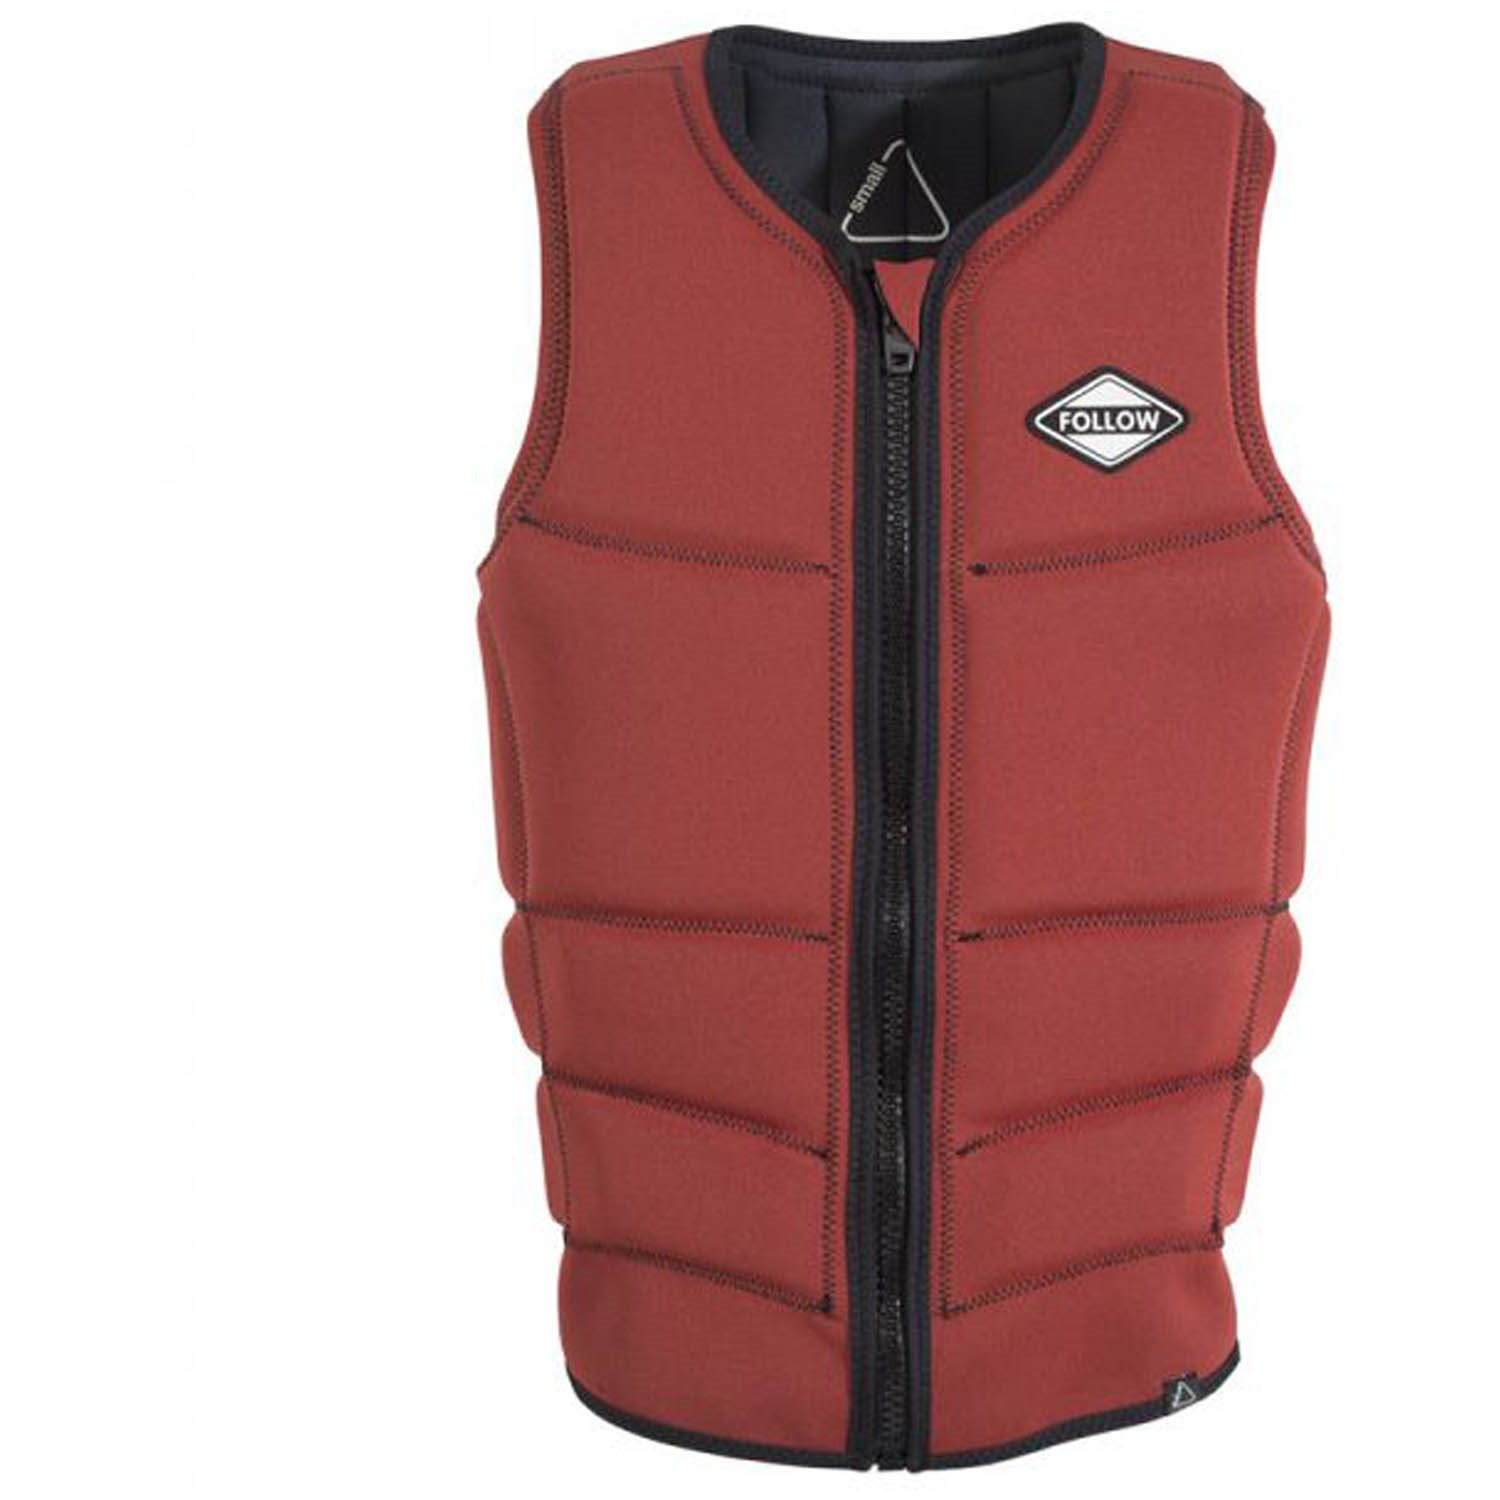 Vest Corp Follow Wakeboard Impact 2017 evo dtpqpT